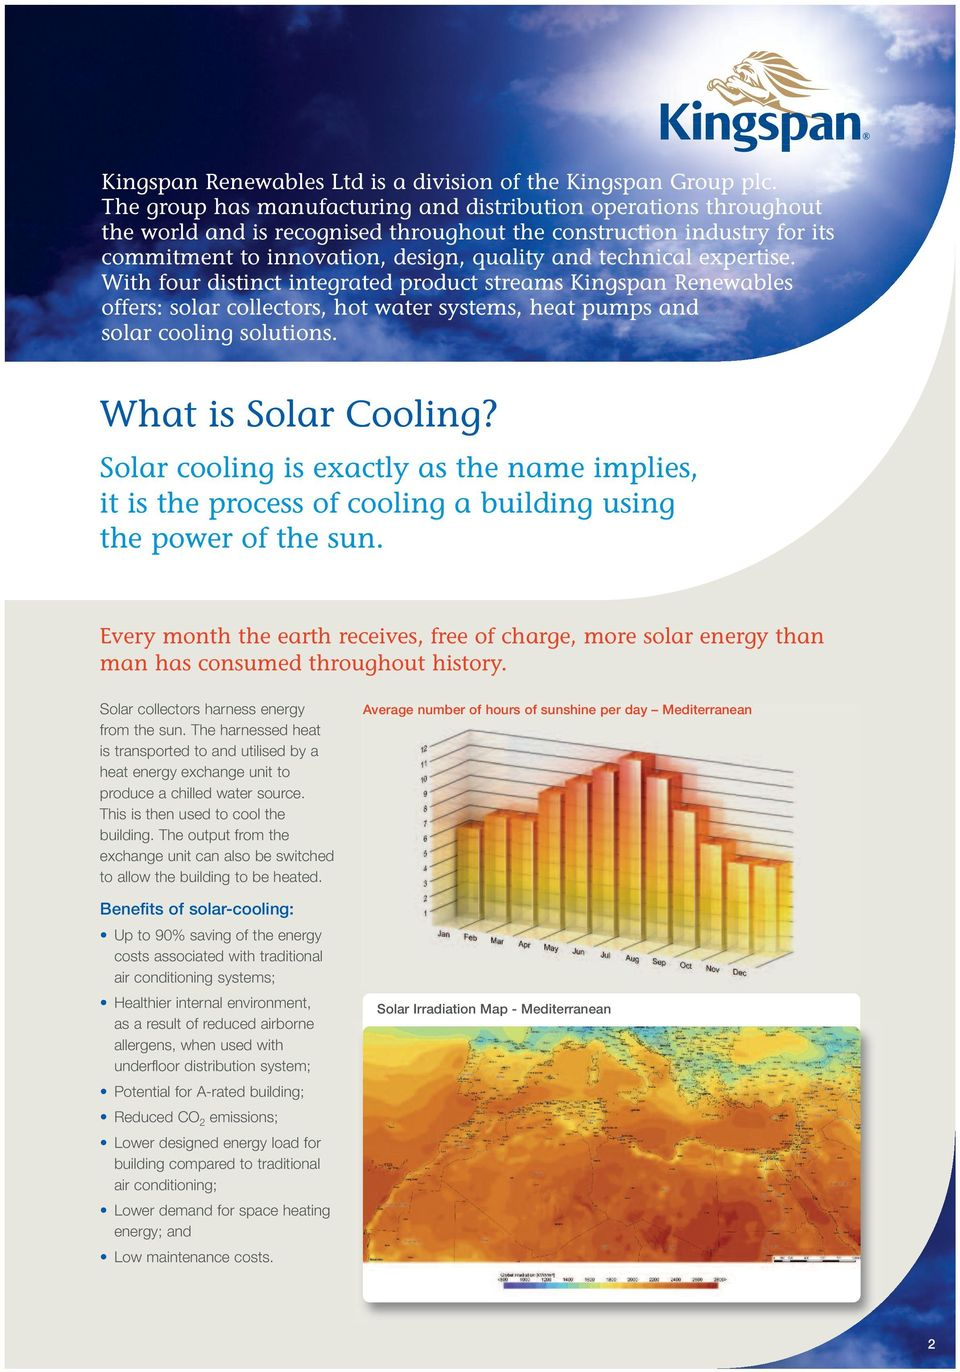 expertise. With four distinct integrated product streams Kingspan Renewables offers: solar collectors, hot water systems, heat pumps and solar cooling solutions. What is Solar Cooling?